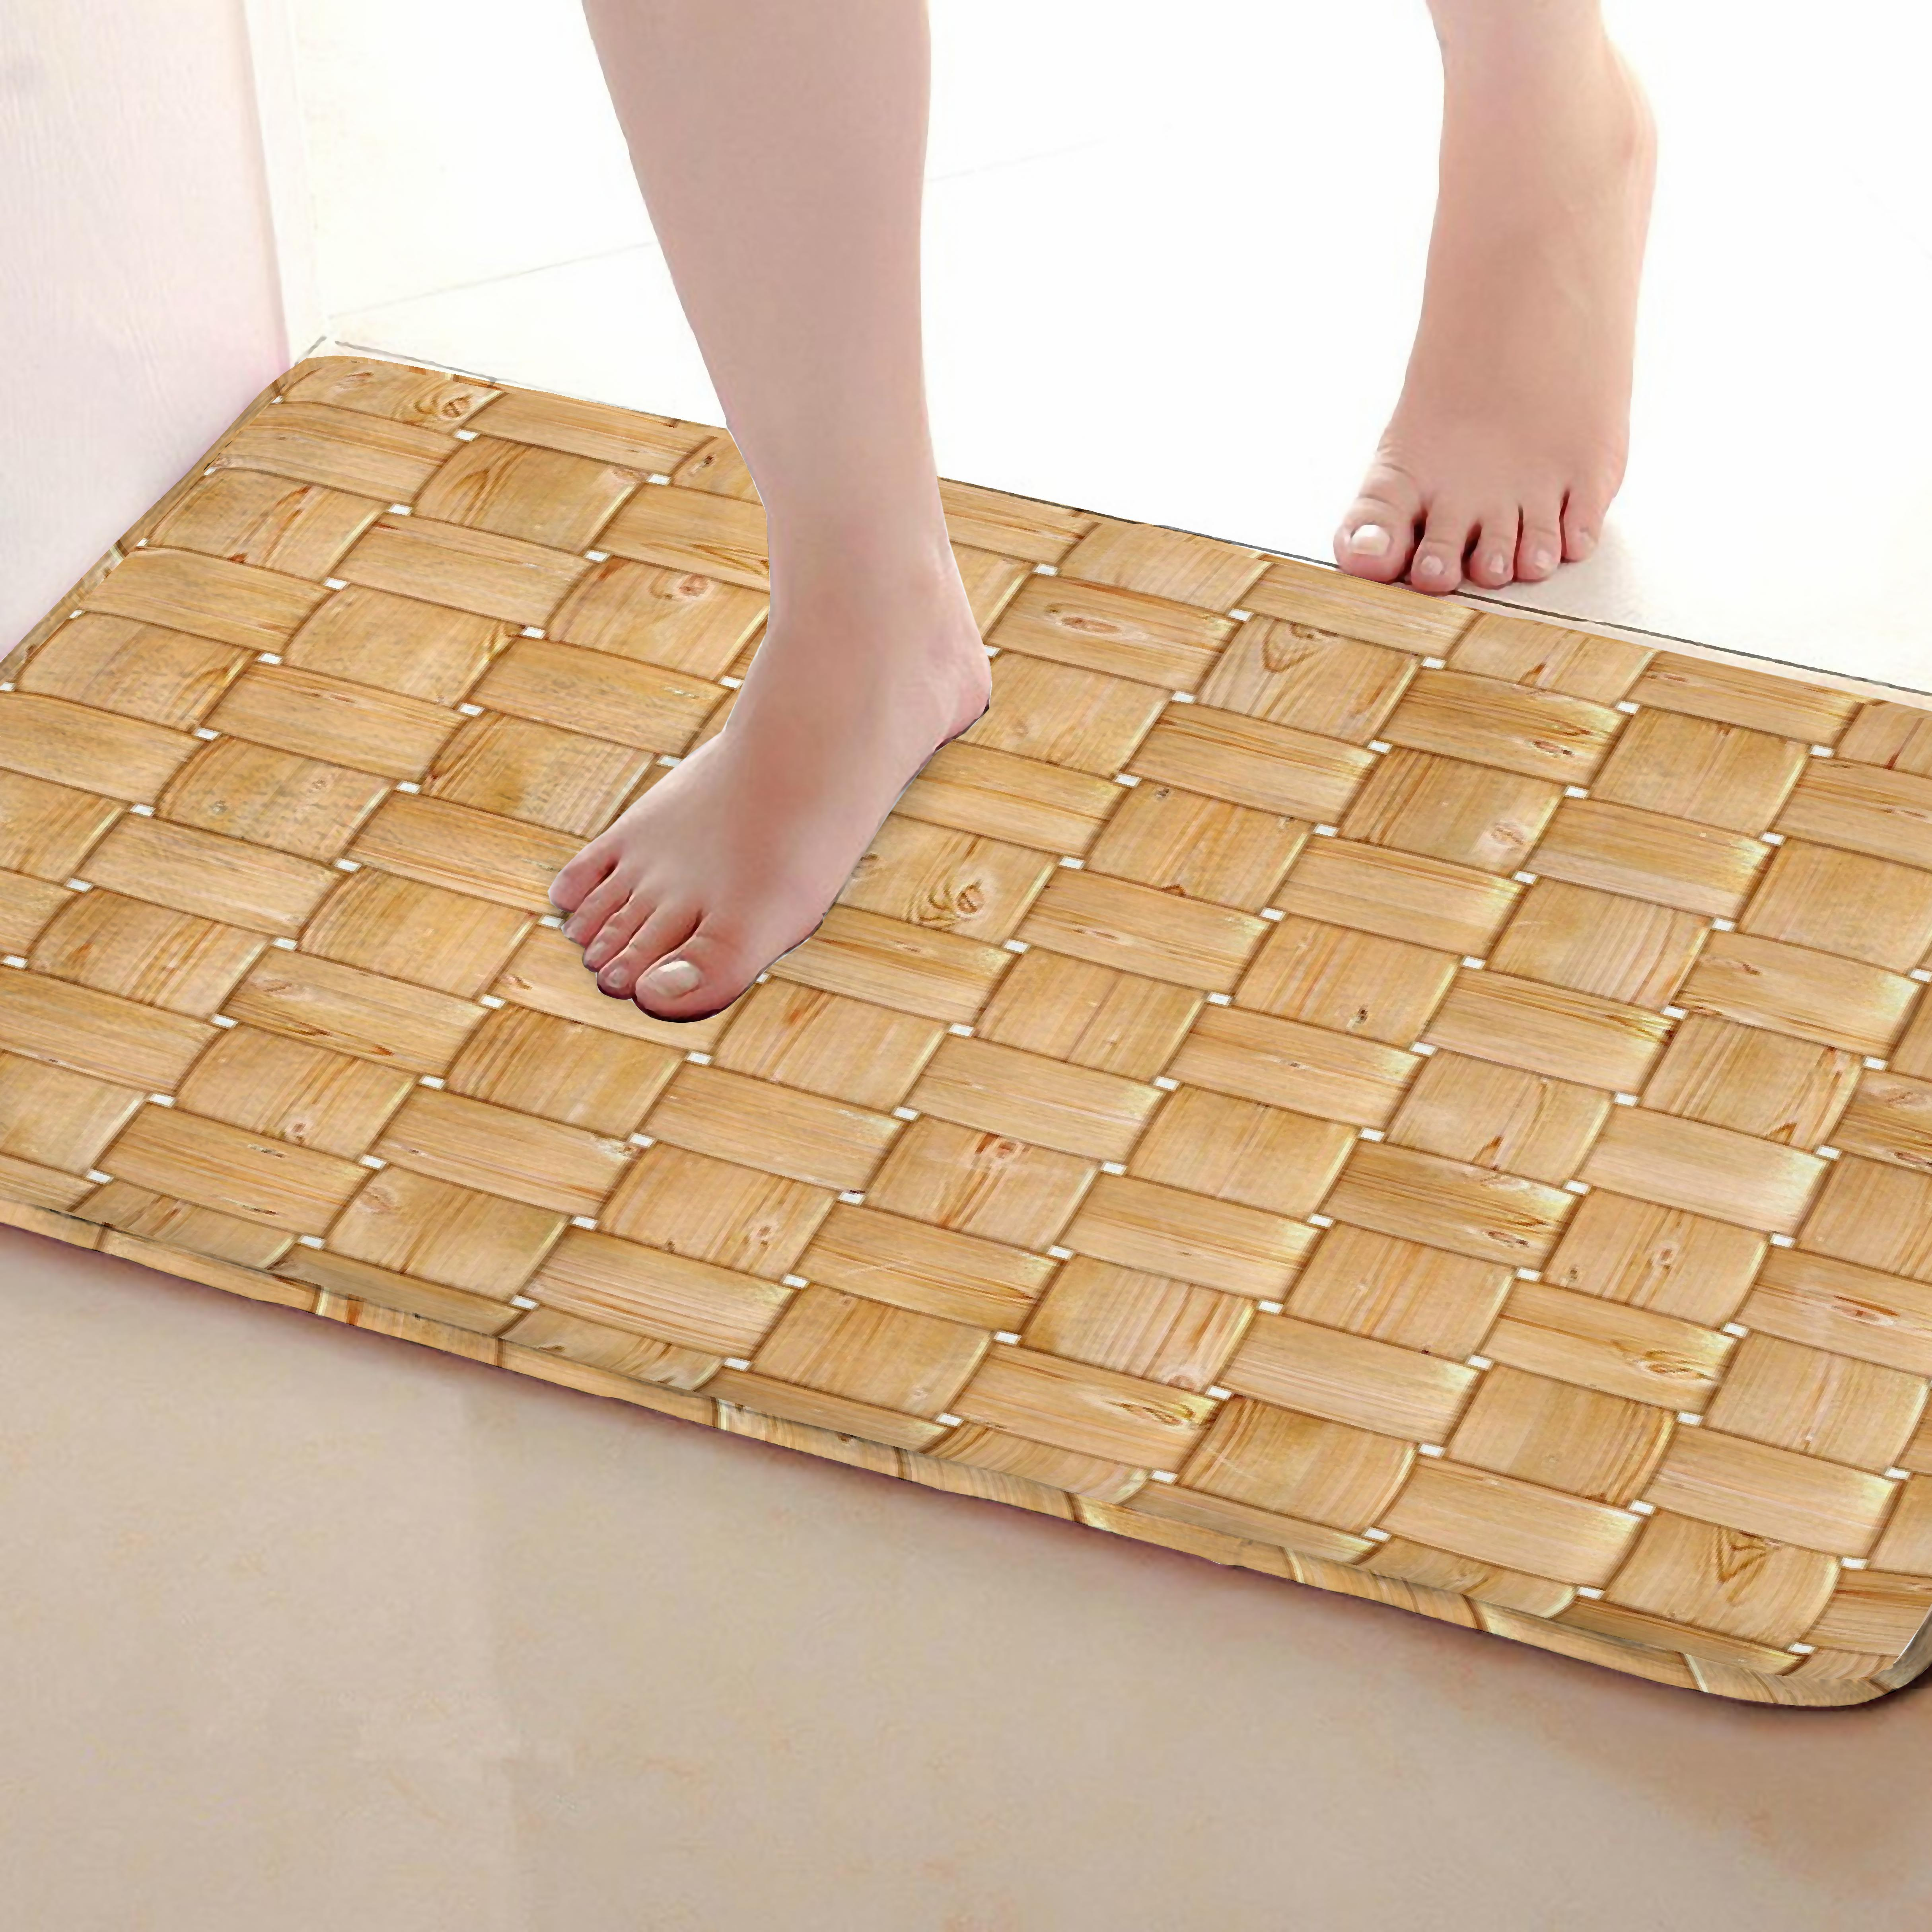 Braid Style Bathroom Mat,Funny Anti skid Bath Mat,Shower Curtains Accessories,Matching Your Shower Curtain